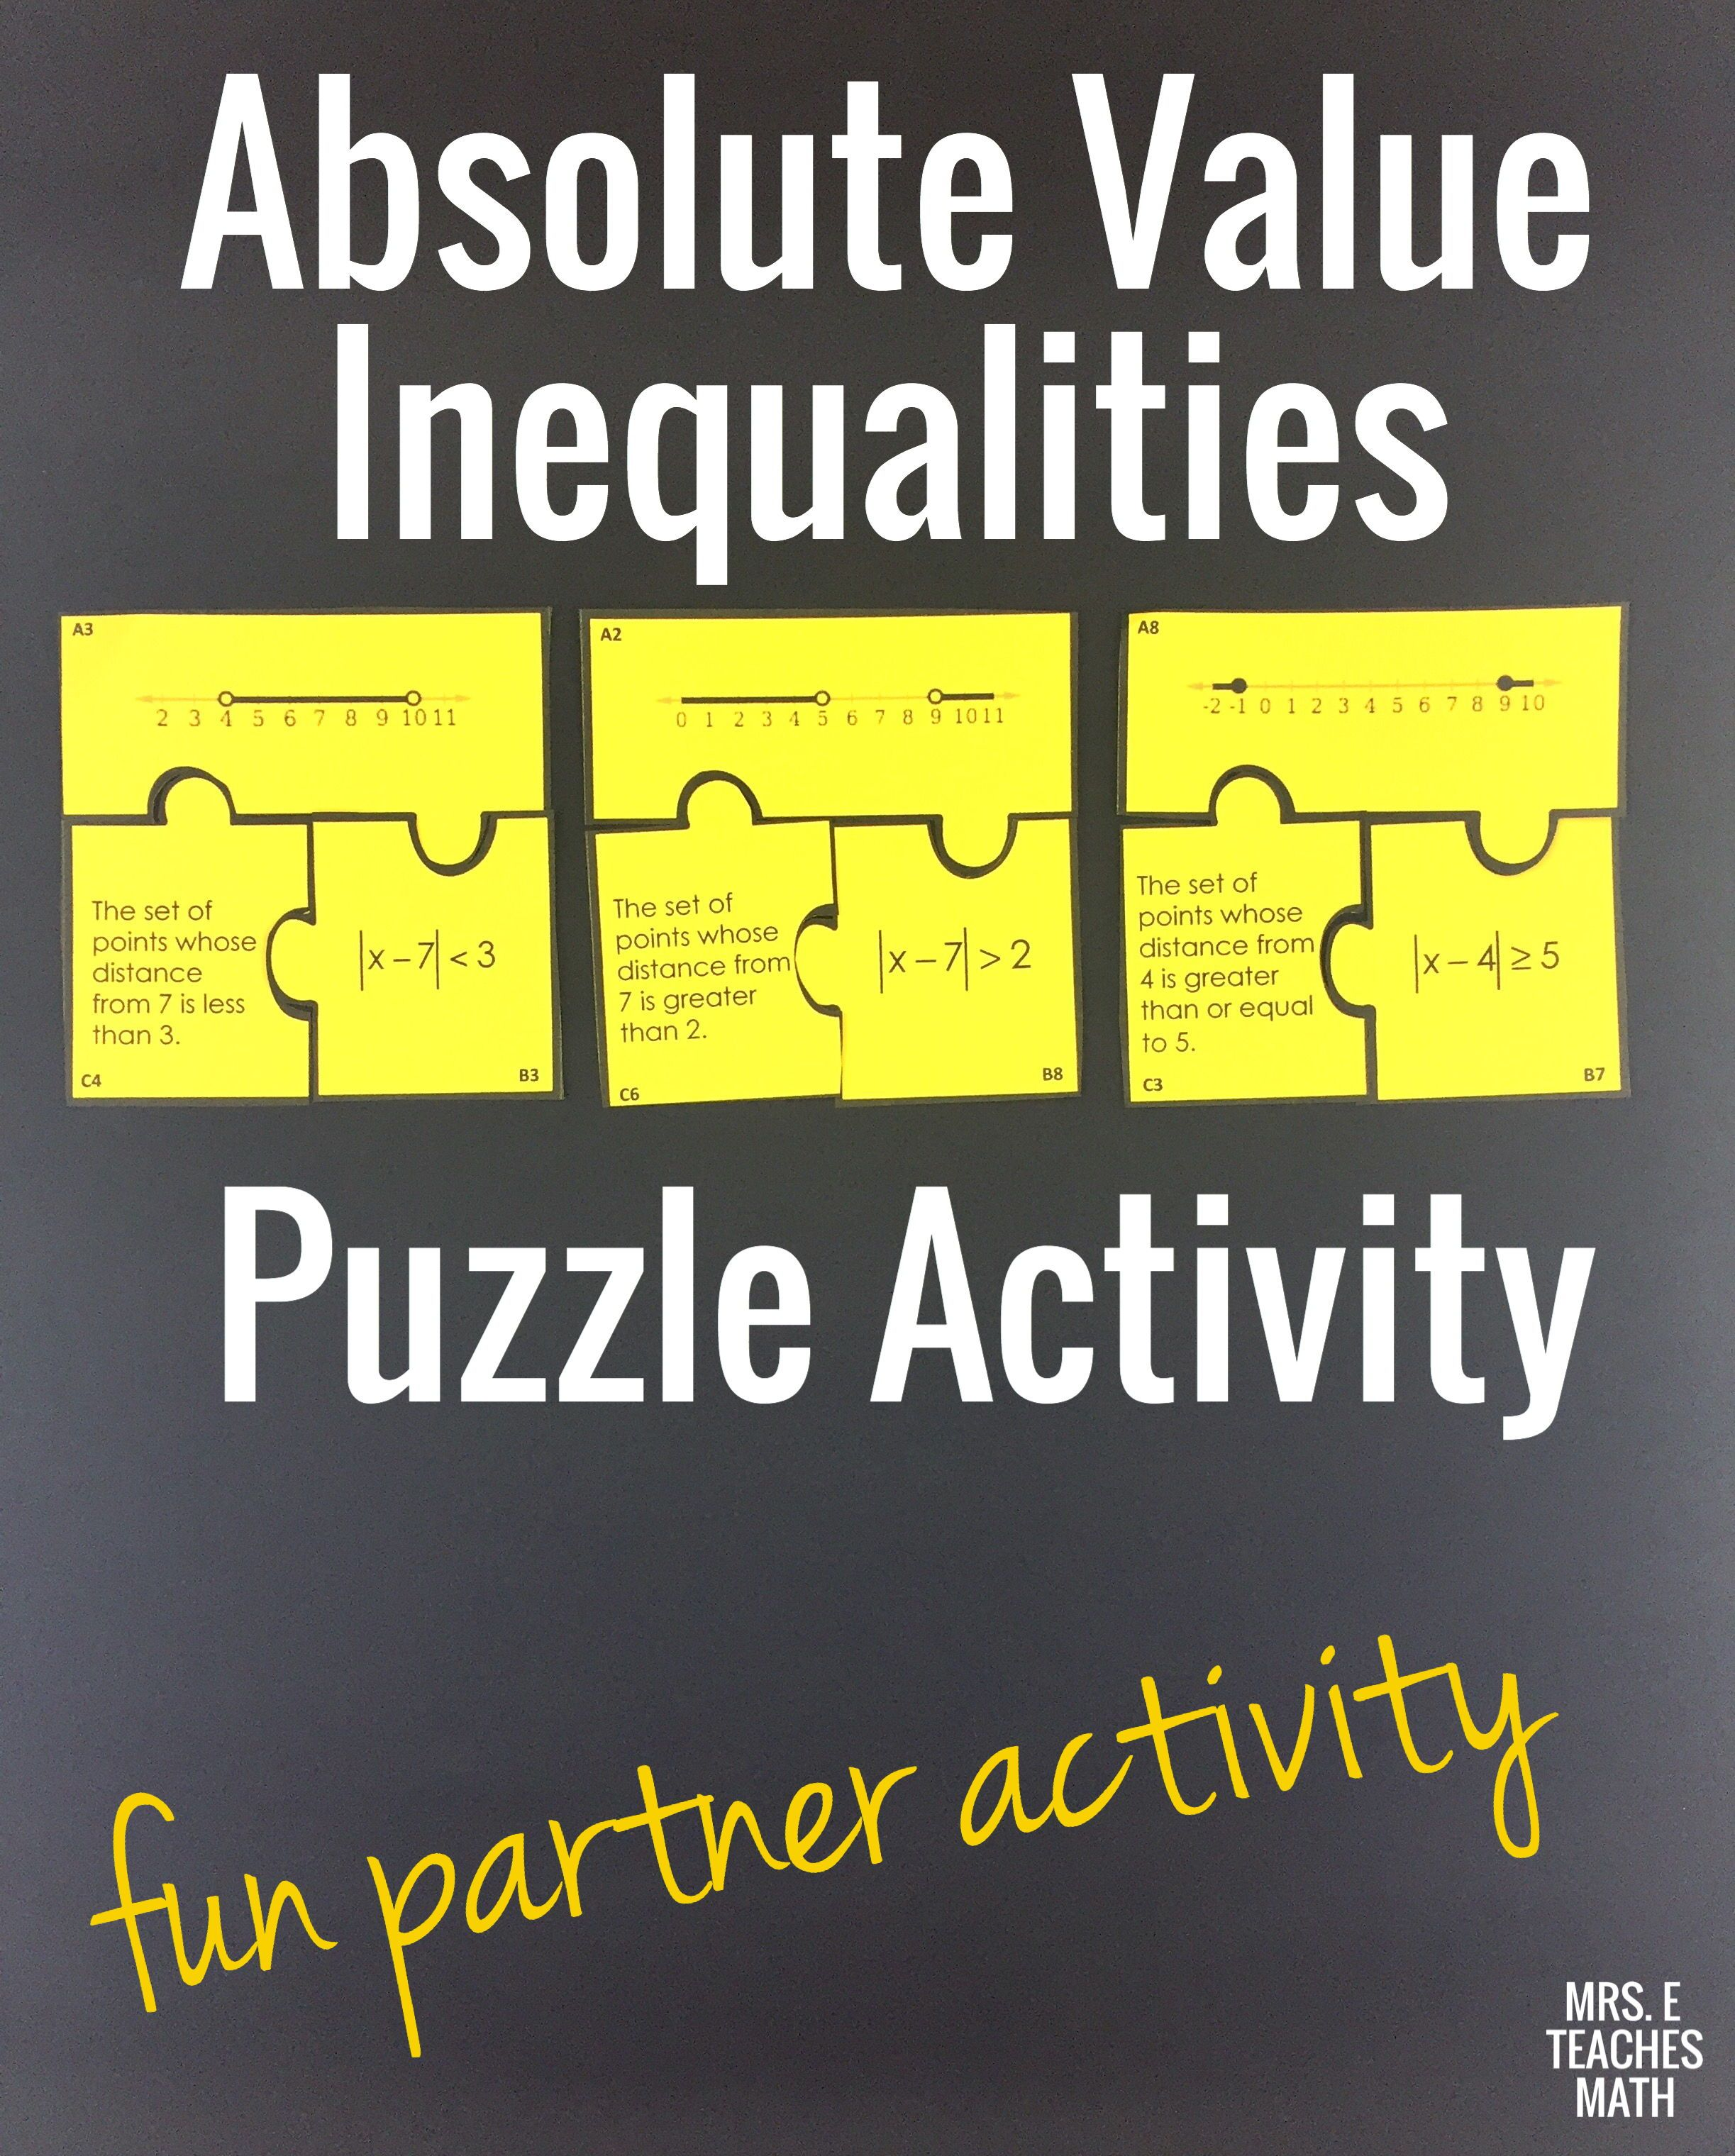 Absolute Value Inequalities Cut Out Puzzle